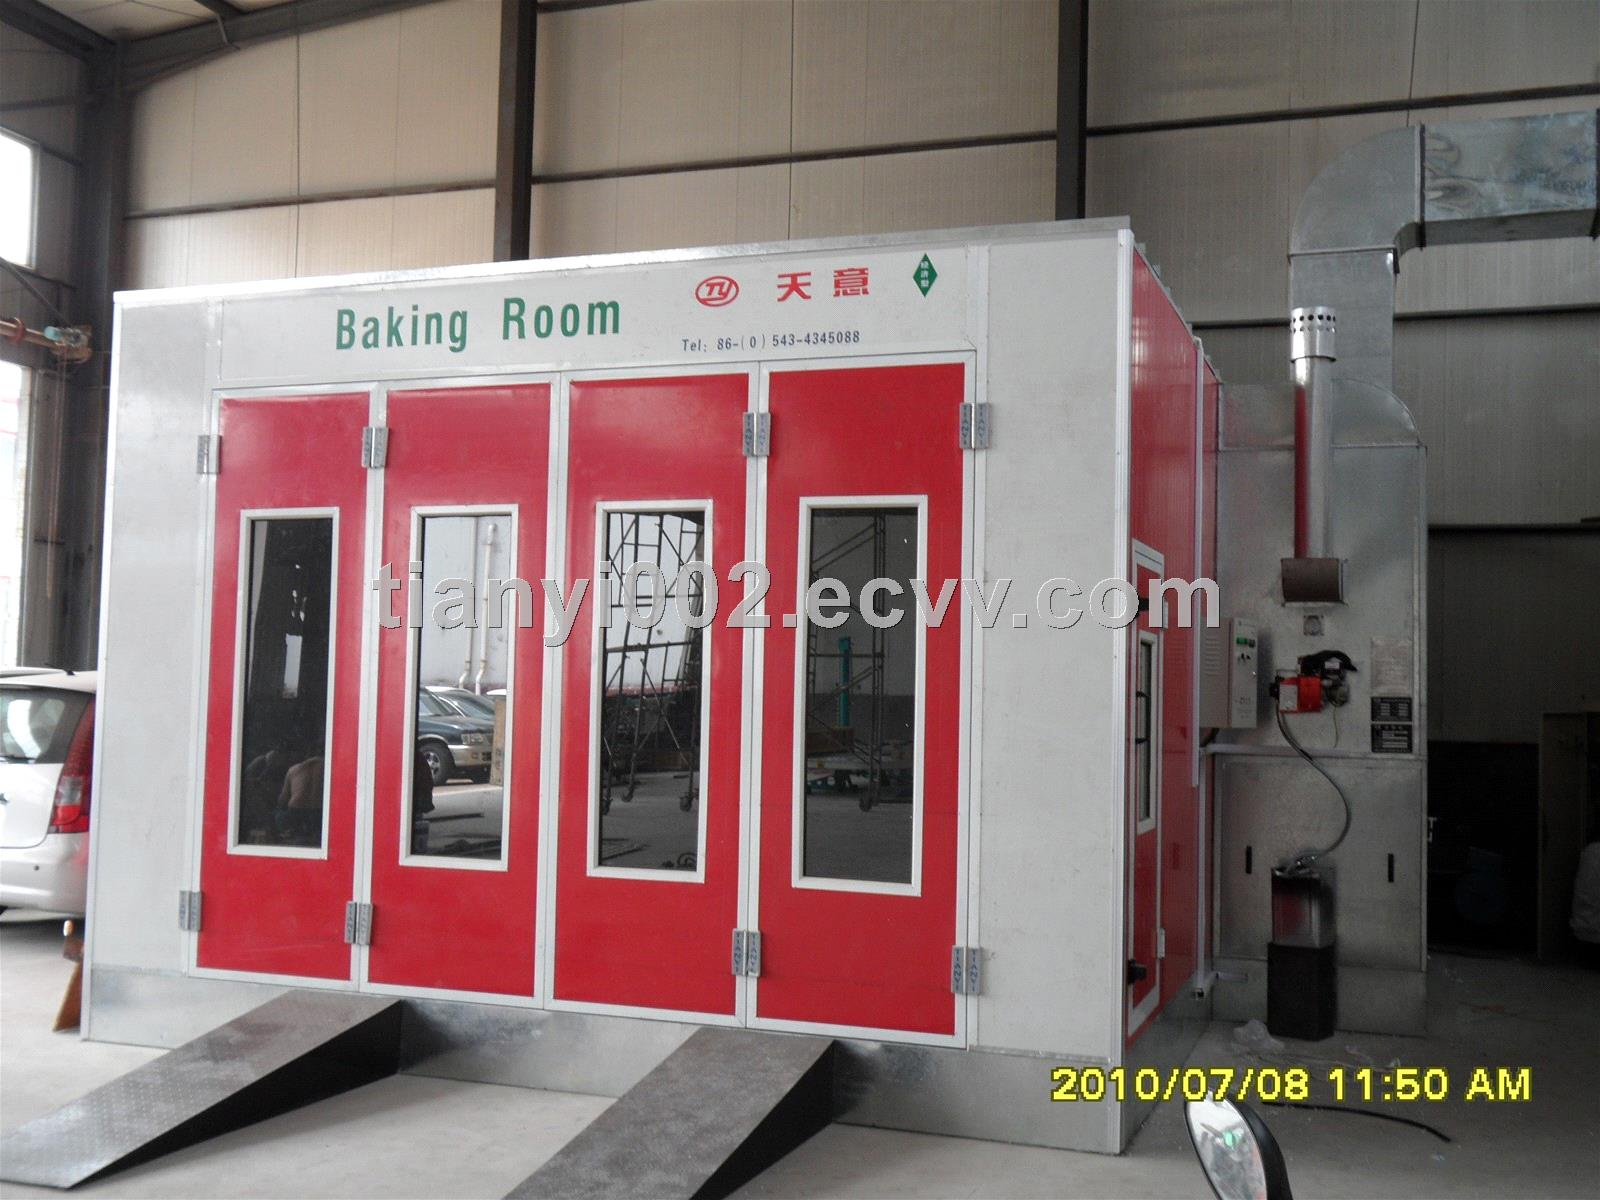 Tianyi Auto Spray Bake Paint Booth Car Spray Booth Oven Used Spray